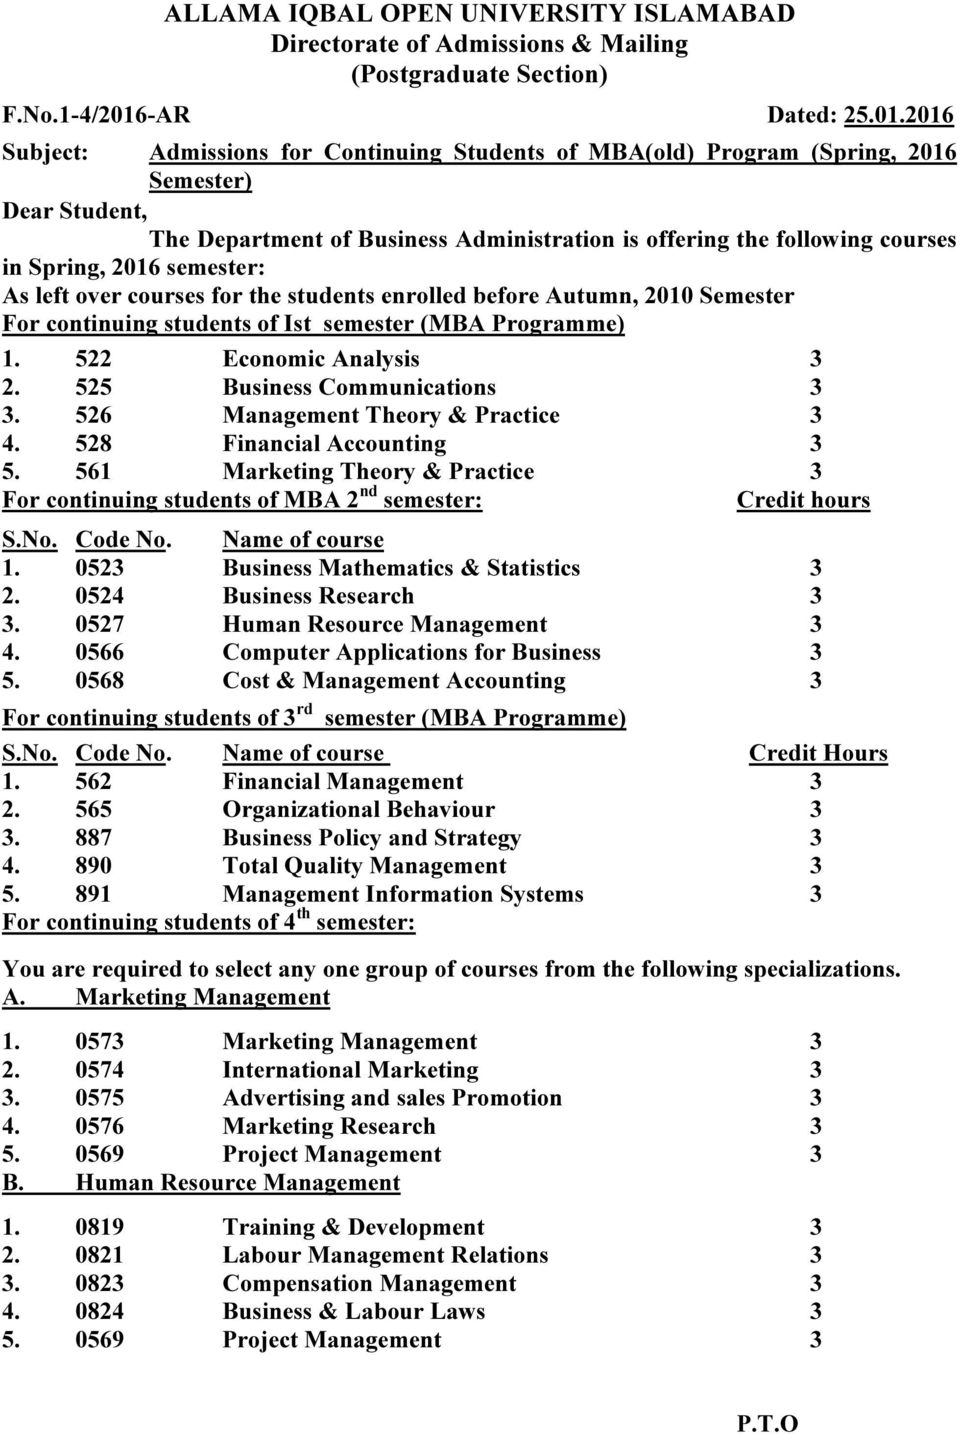 2016 Subject: Admissions for Continuing Students of MBA(old) Program (Spring, 2016 Semester) The Department of Business Administration is offering the following courses in Spring, 2016 semester: As